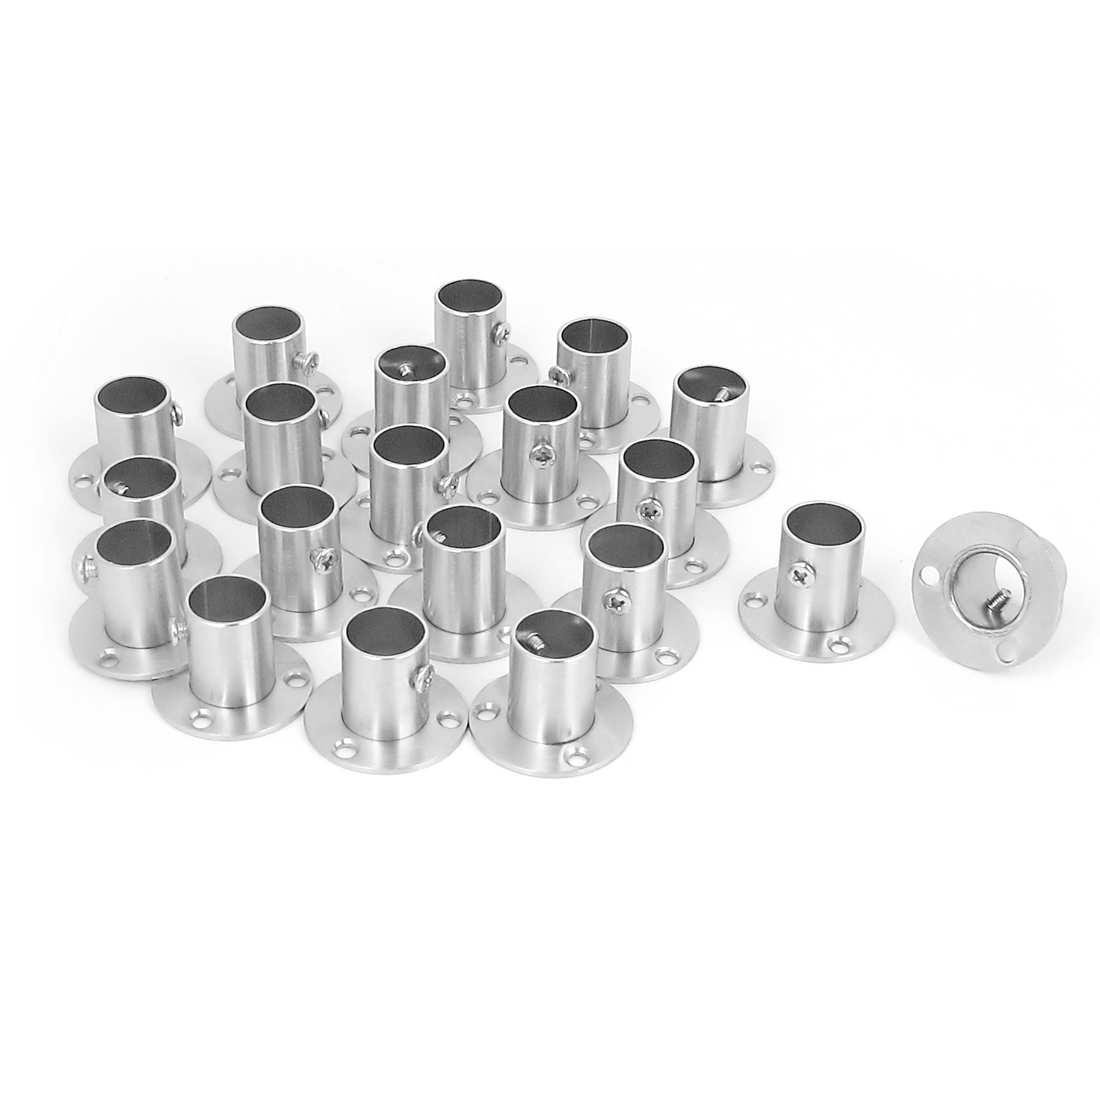 Closet Wardrobe Rail Rod End Support Bracket Socket 19mm Tube 20Pcs